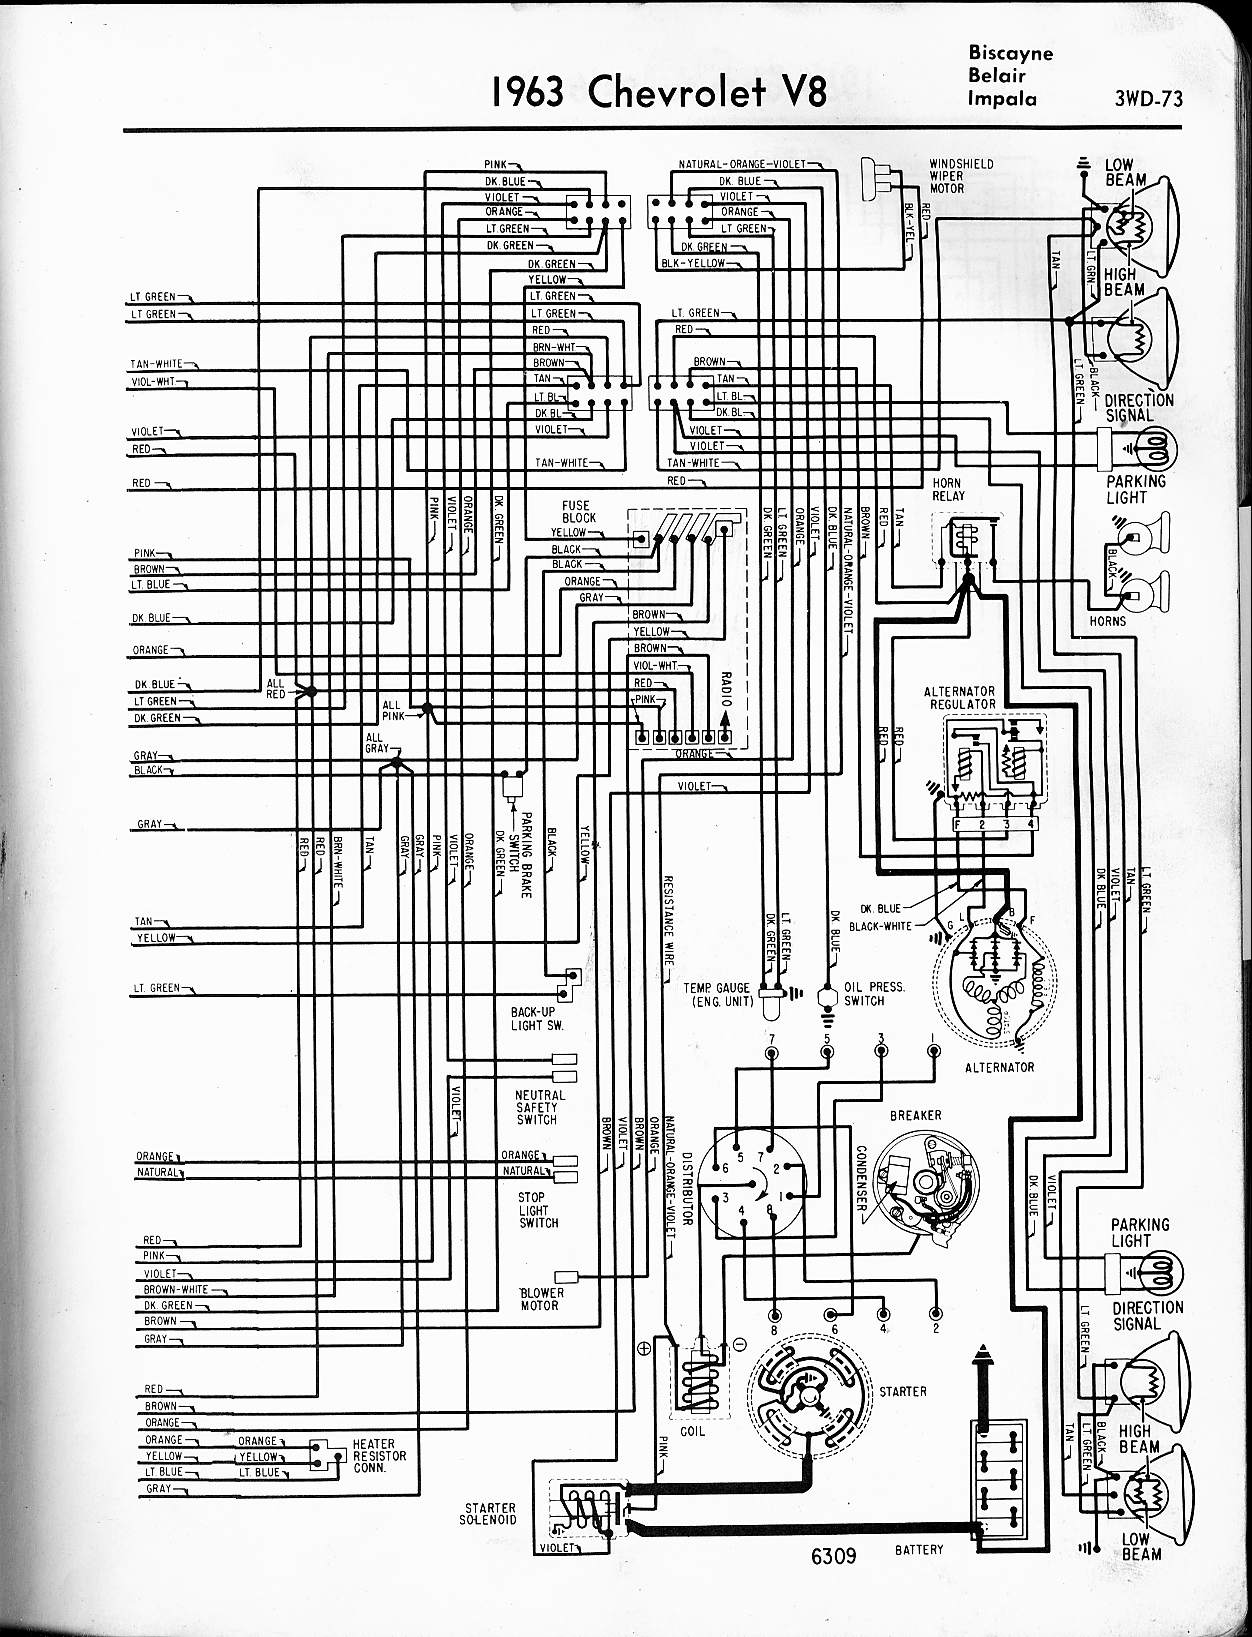 hight resolution of 57 65 chevy wiring diagrams 1964 chevrolet impala wiring diagram 1963 v8 biscayne belair